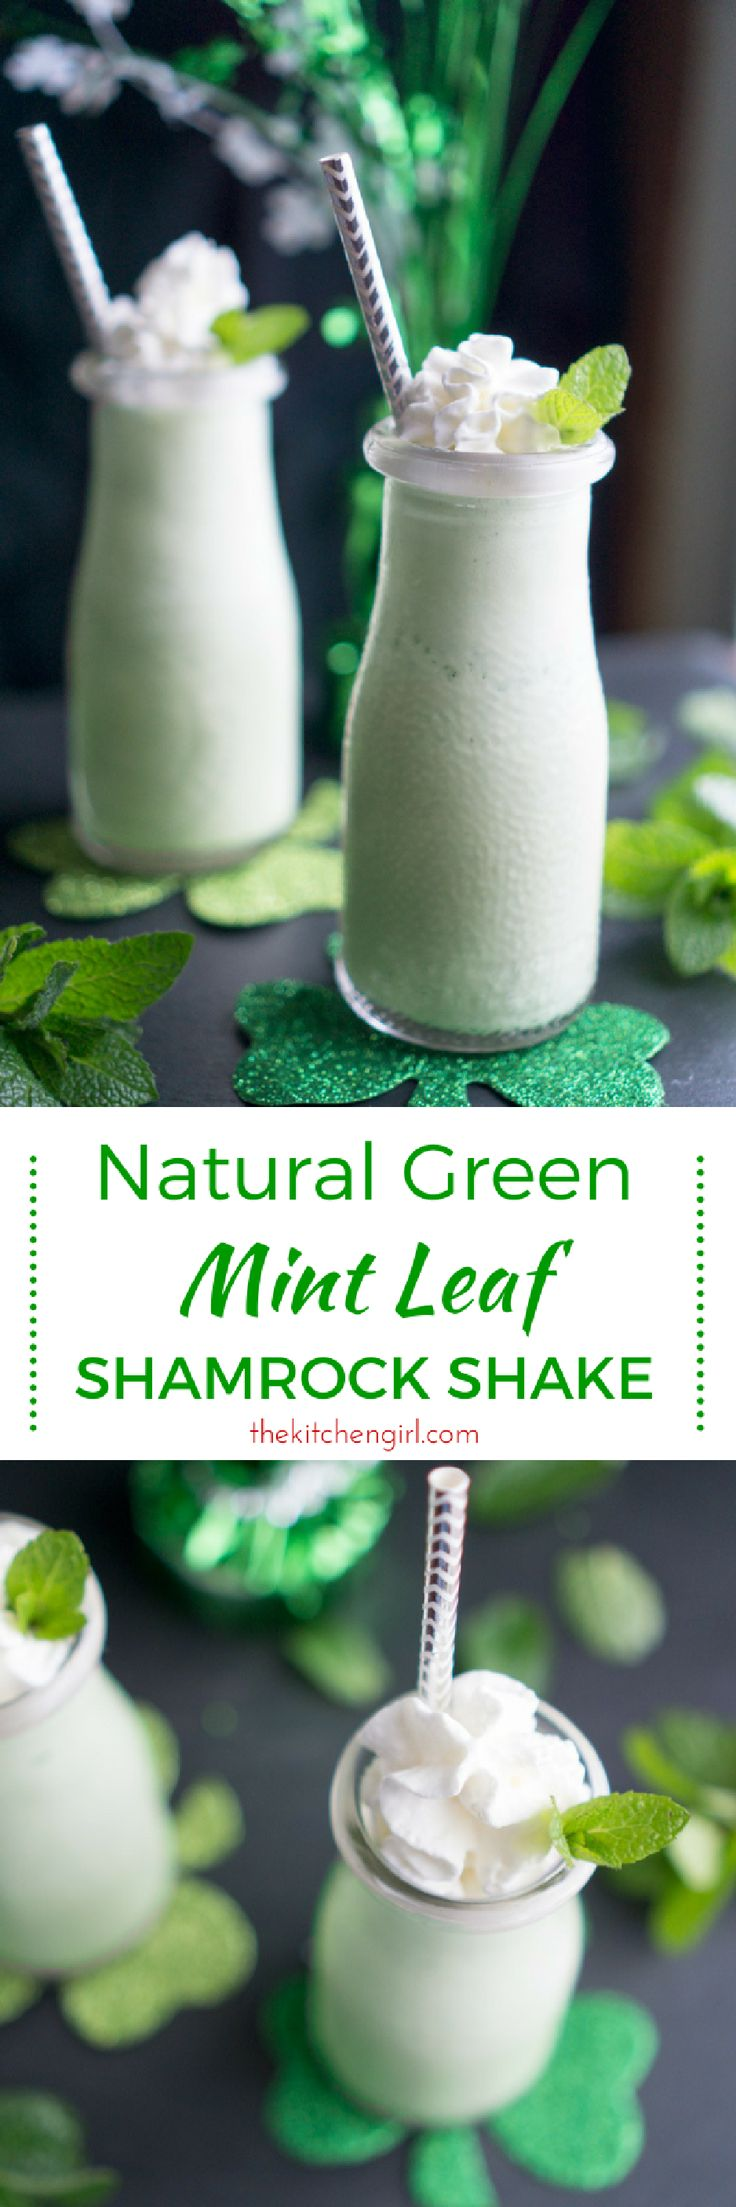 Use real mint leaf to color and flavor your St. Pat's sweet treat. No food dye and no added sugar. Natural Mint Leaf Shamrock Shake recipe on thekitchengirl.com